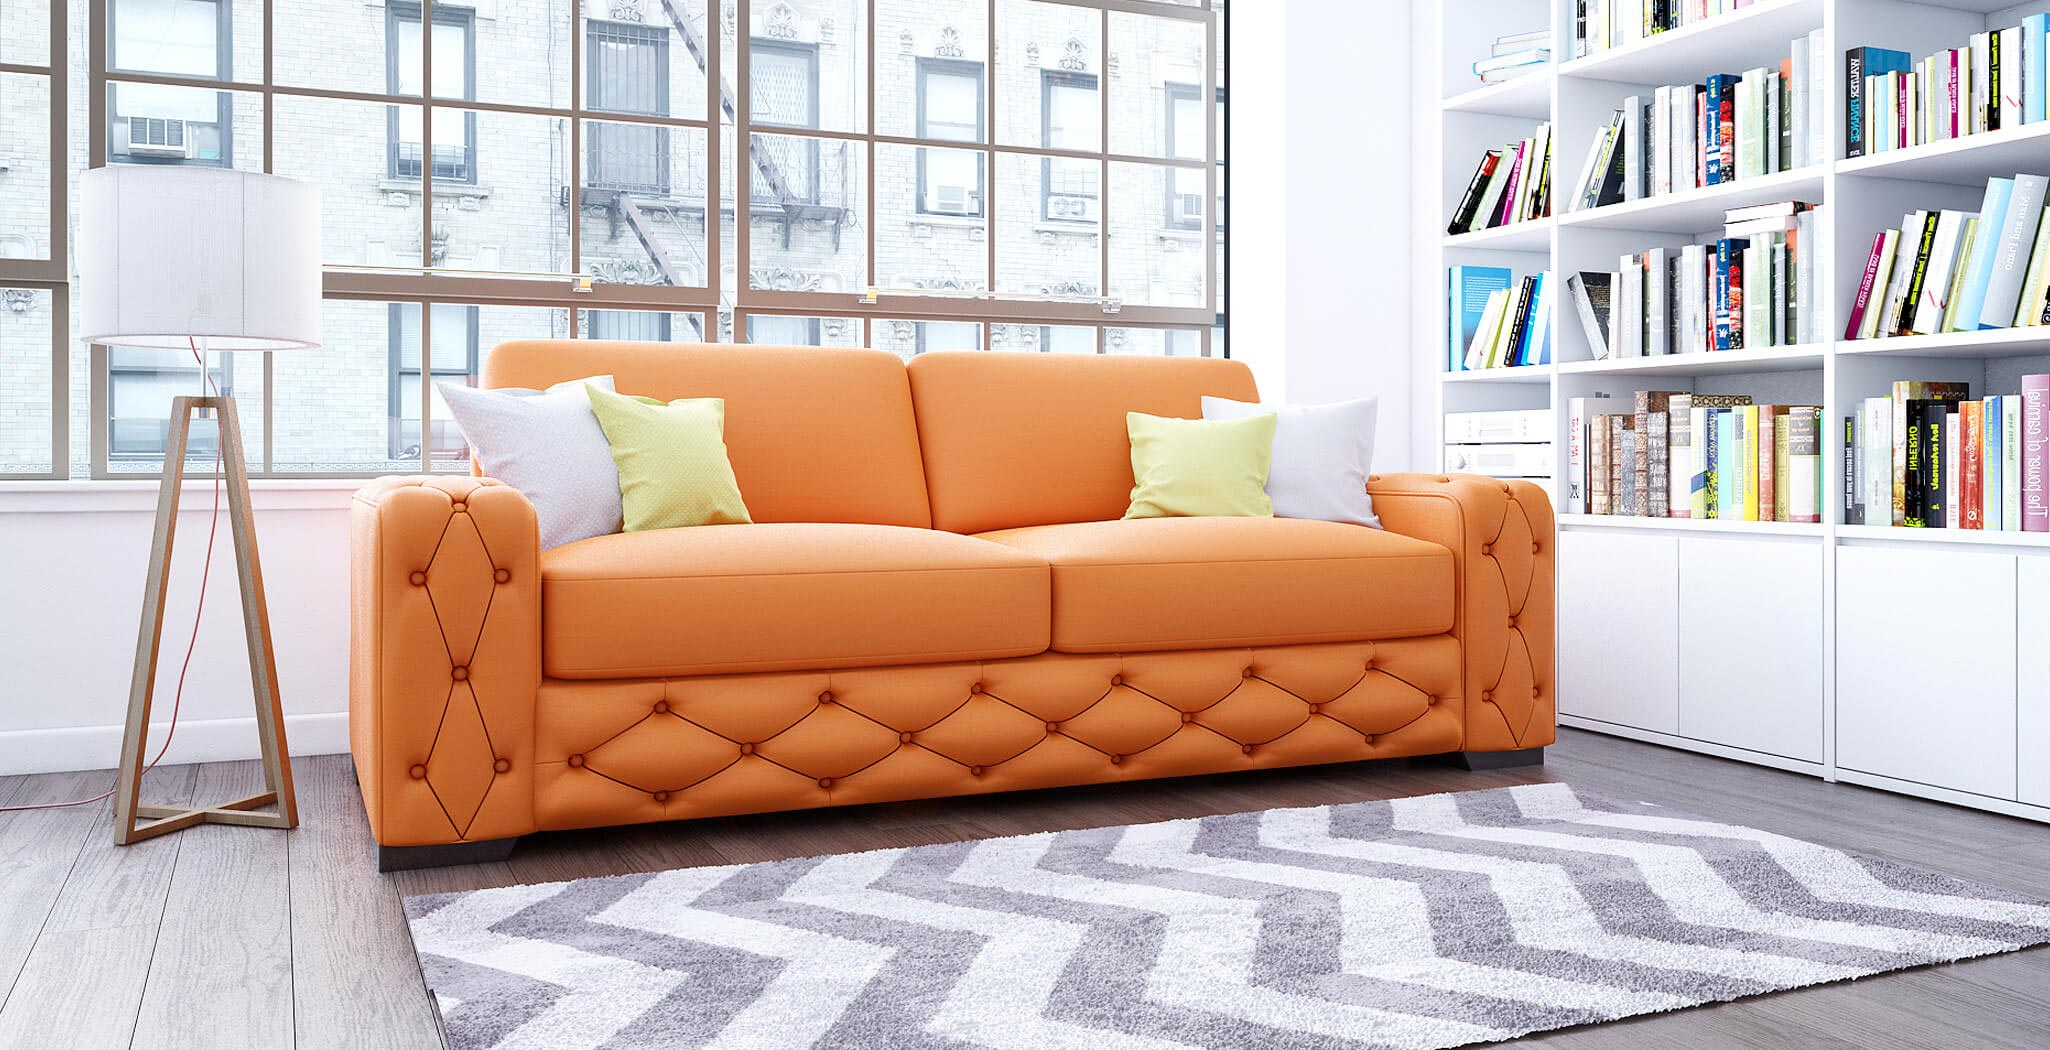 windsor sofa furniture gallery 1